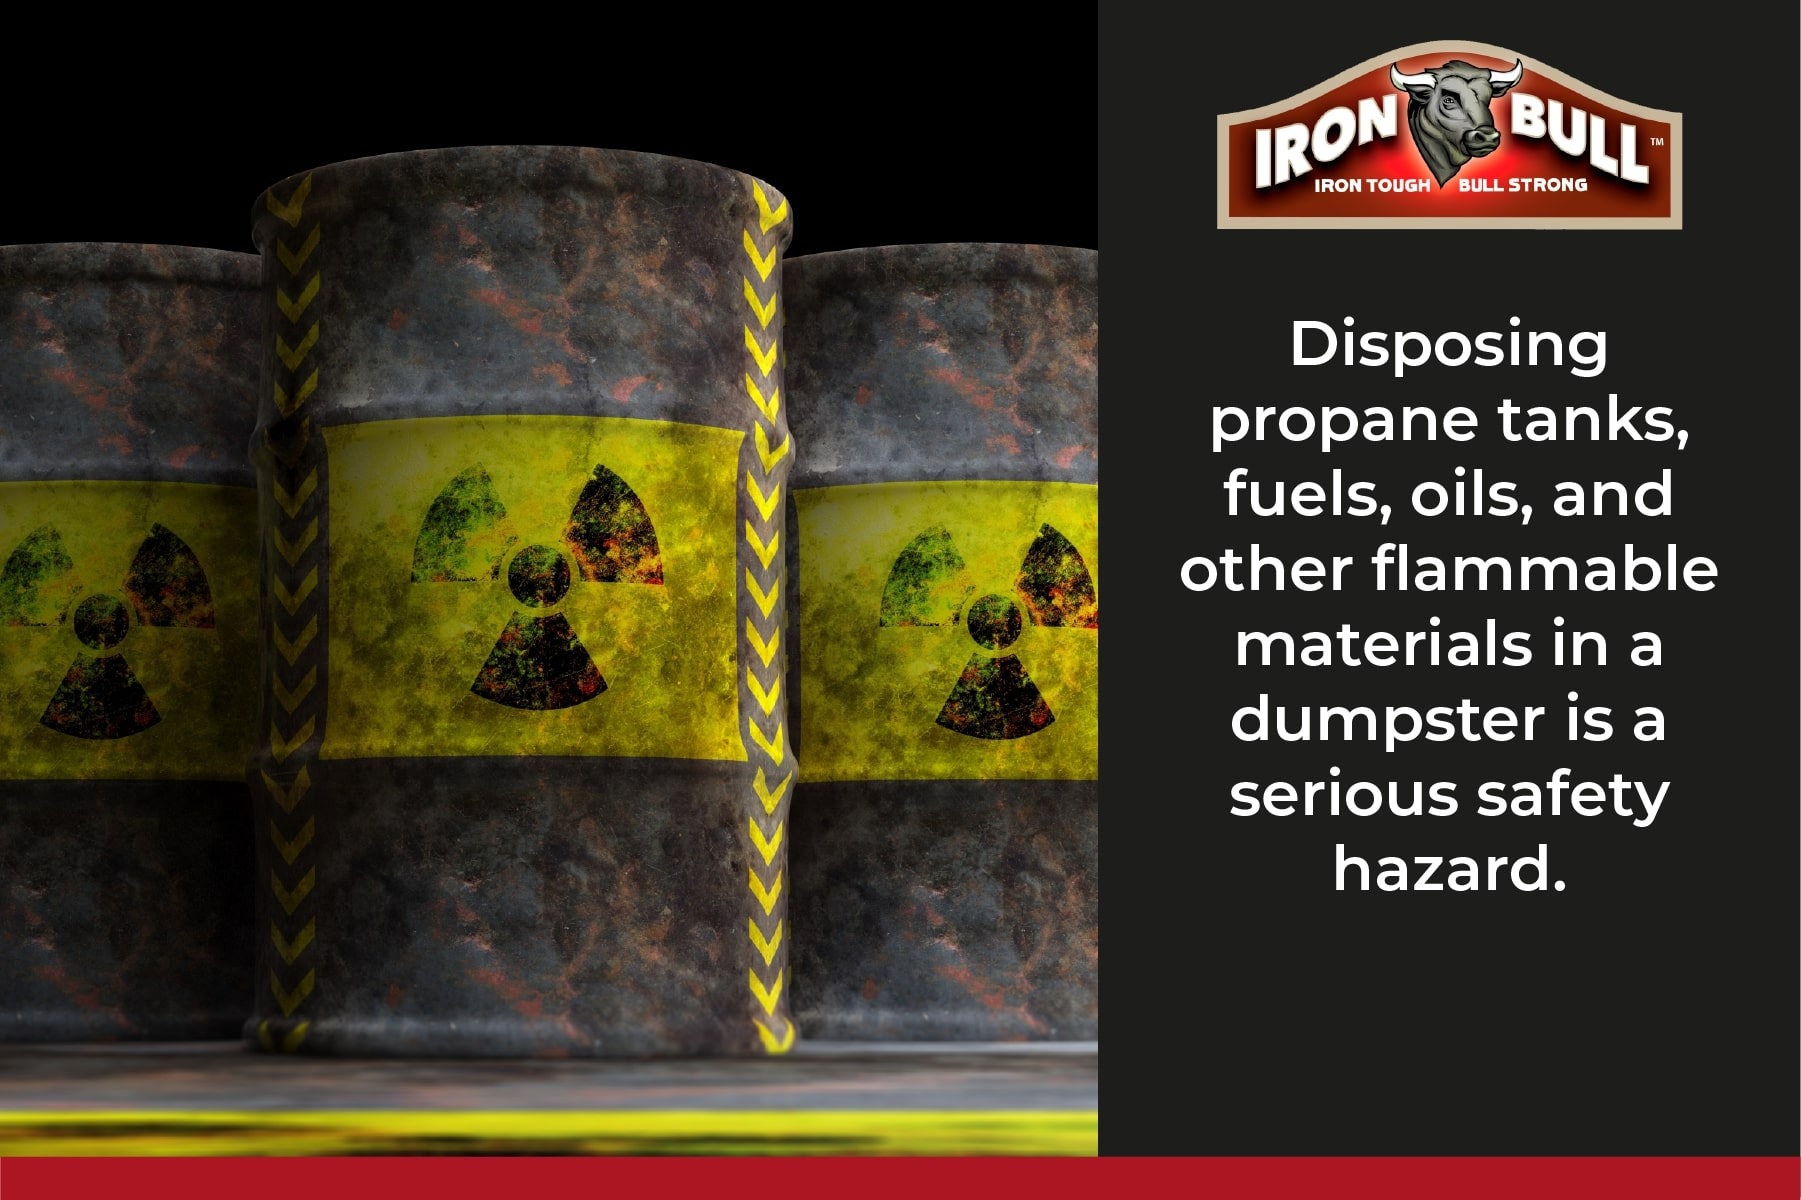 Disposing fuel in a dumpster is illegal